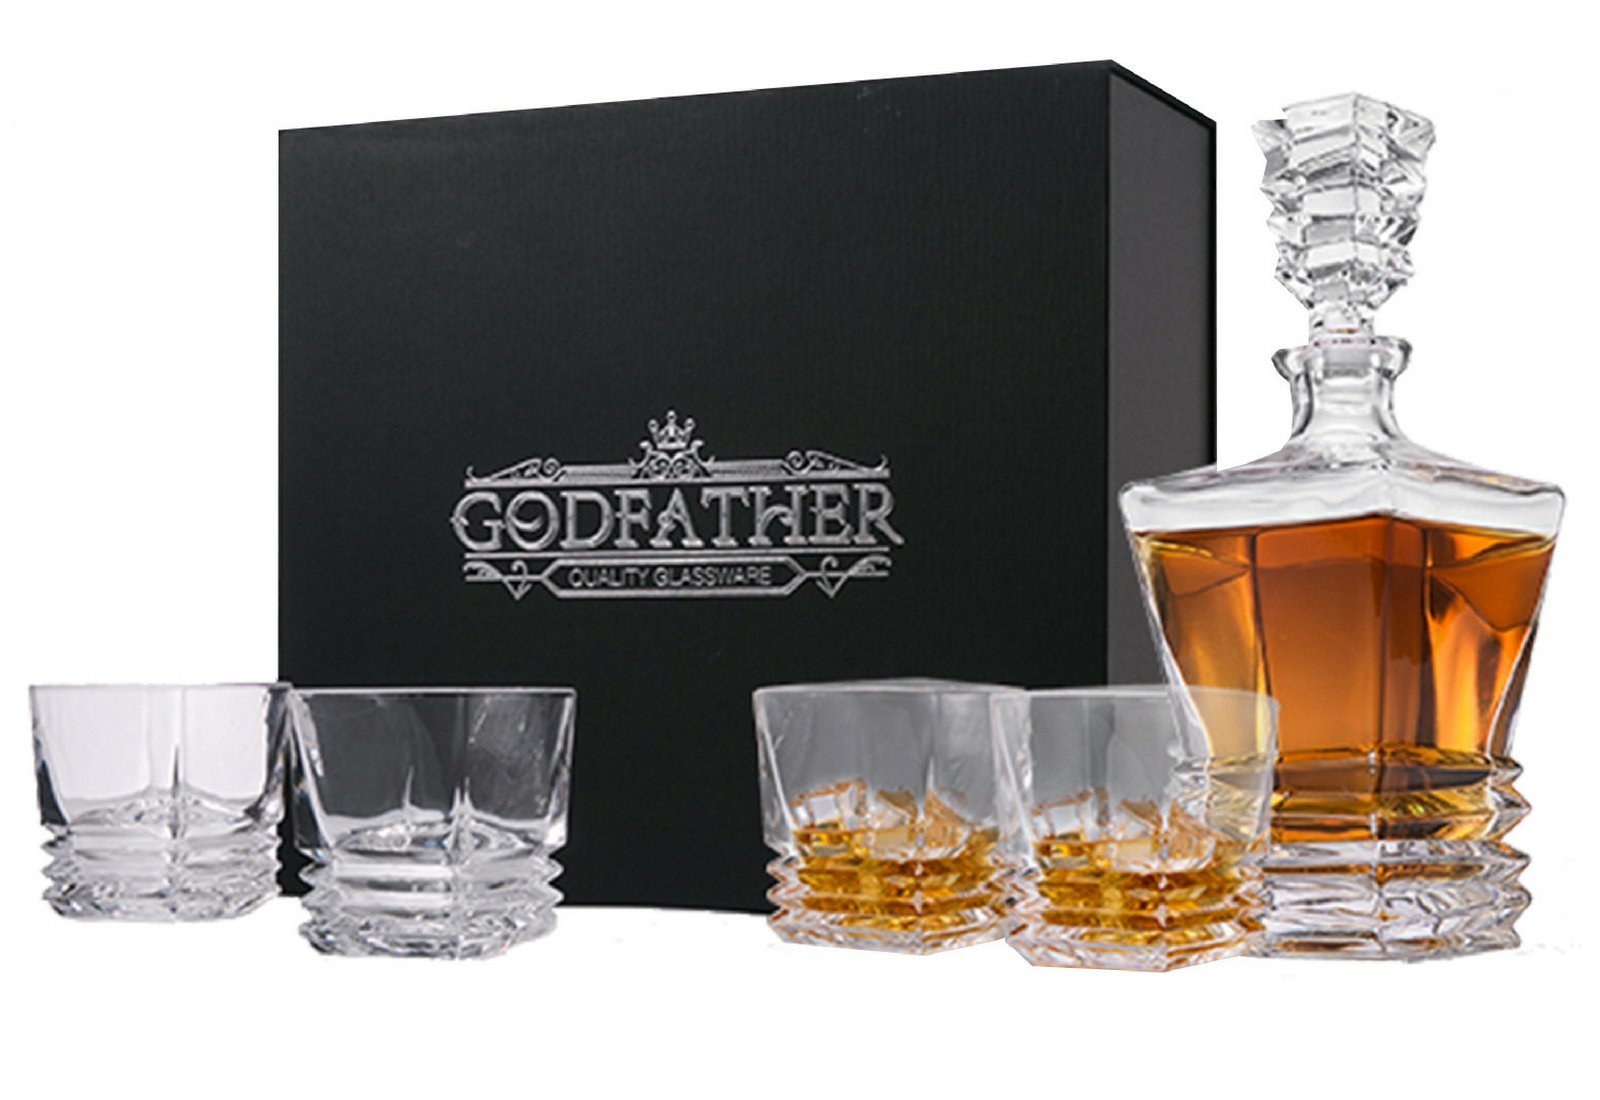 GODFATHER Pacific Whiskey Decanter Set 4 Glasses in Elegant Gift Box, Unique European Lead-Free Crystal Barware Classic 27Fl oz Liquor Decanter 4 Old Fashioned Glasses Whisky Scotch Bourbon Rum